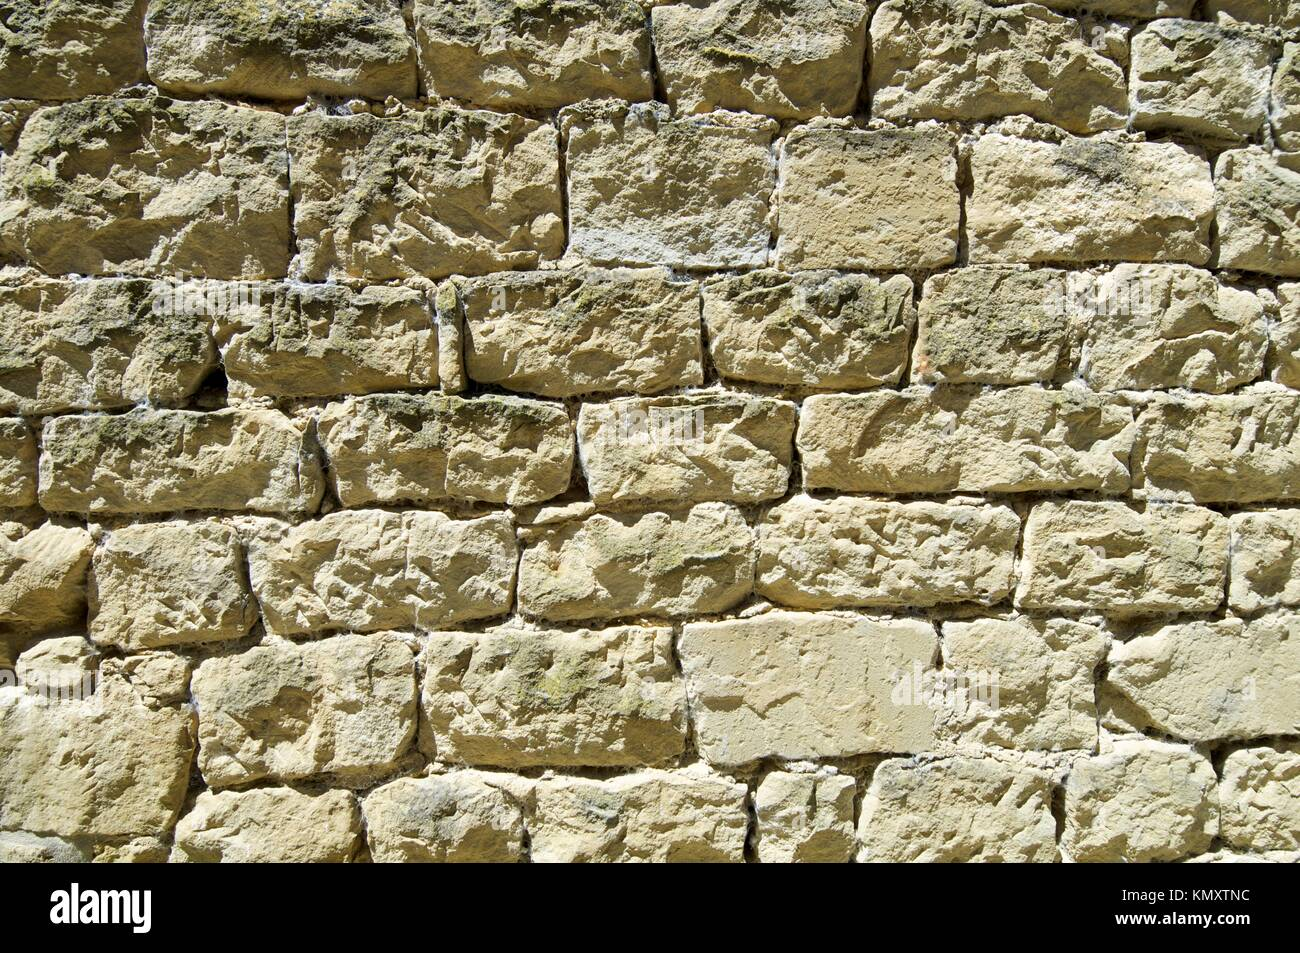 The Separation Wall Stockfotos & The Separation Wall Bilder - Alamy